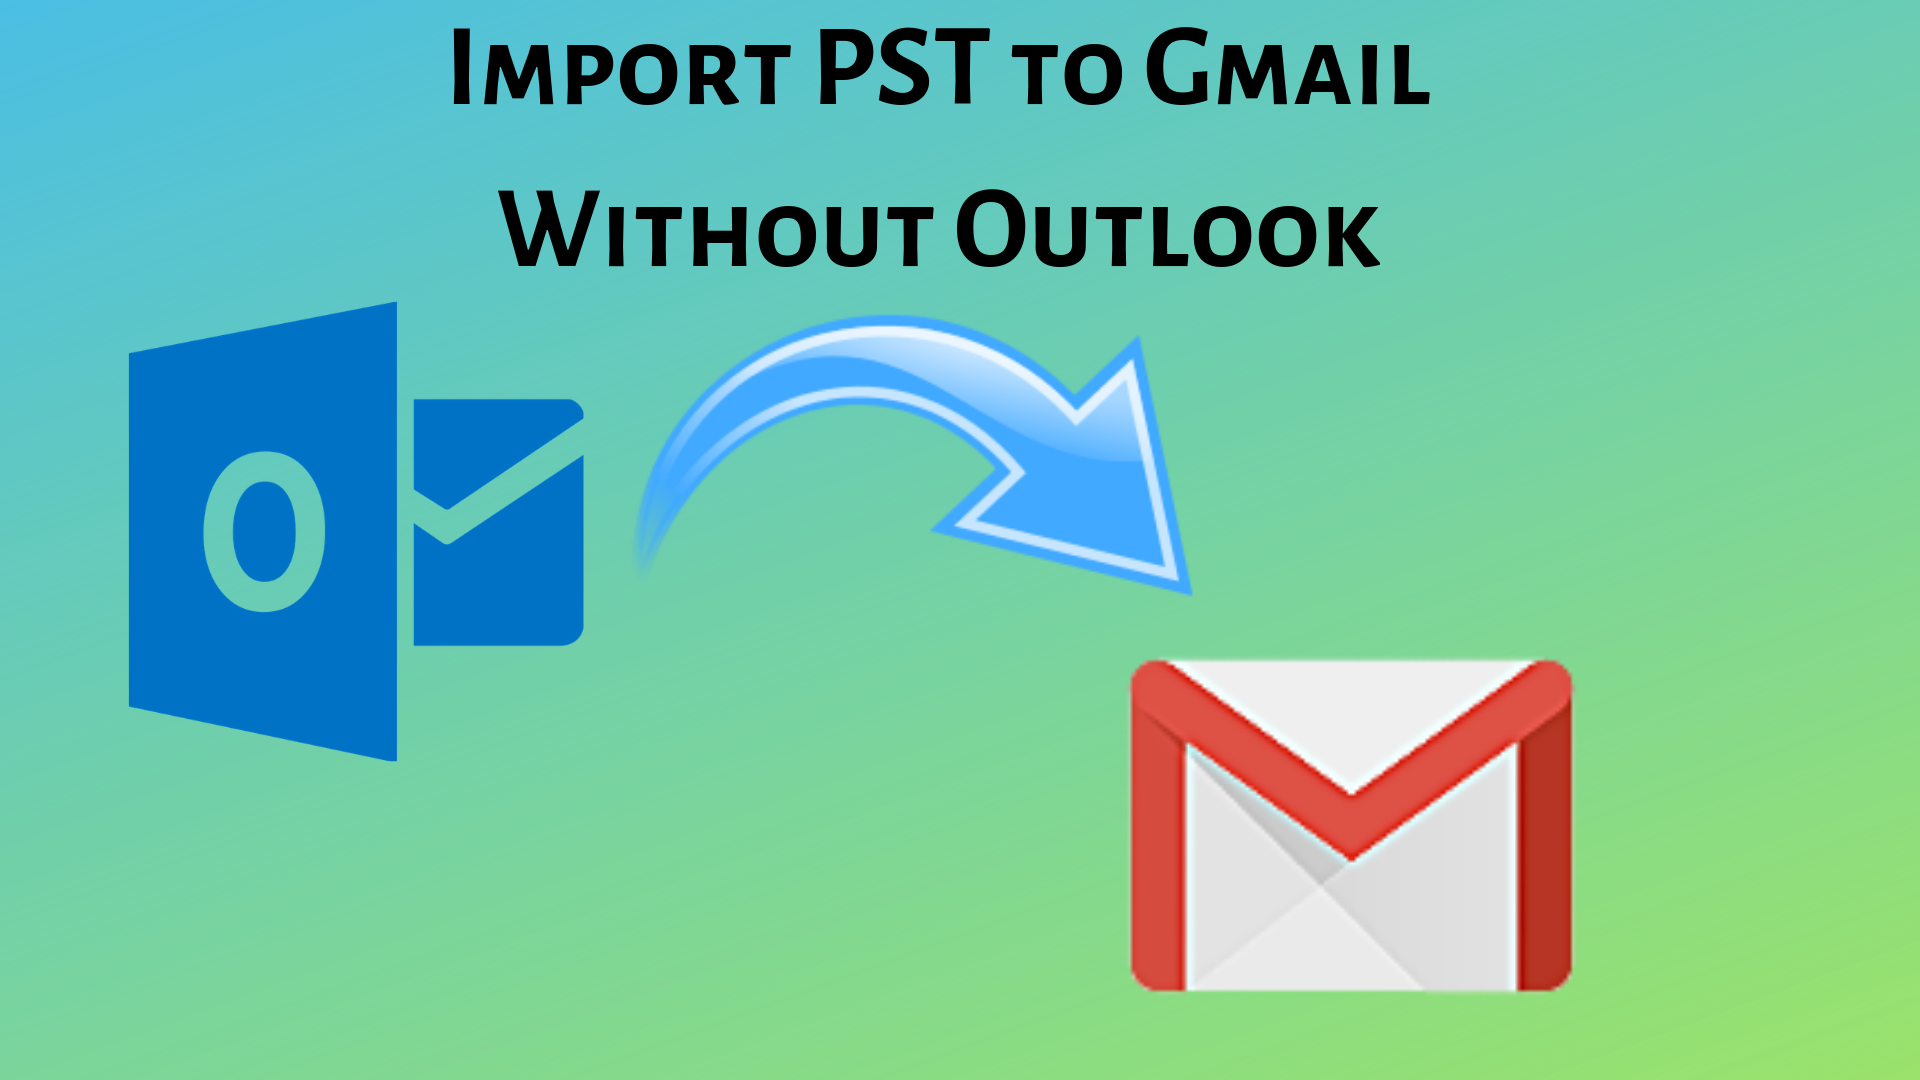 Import PST into Gmail Without Outlook - PST to Gmail Import